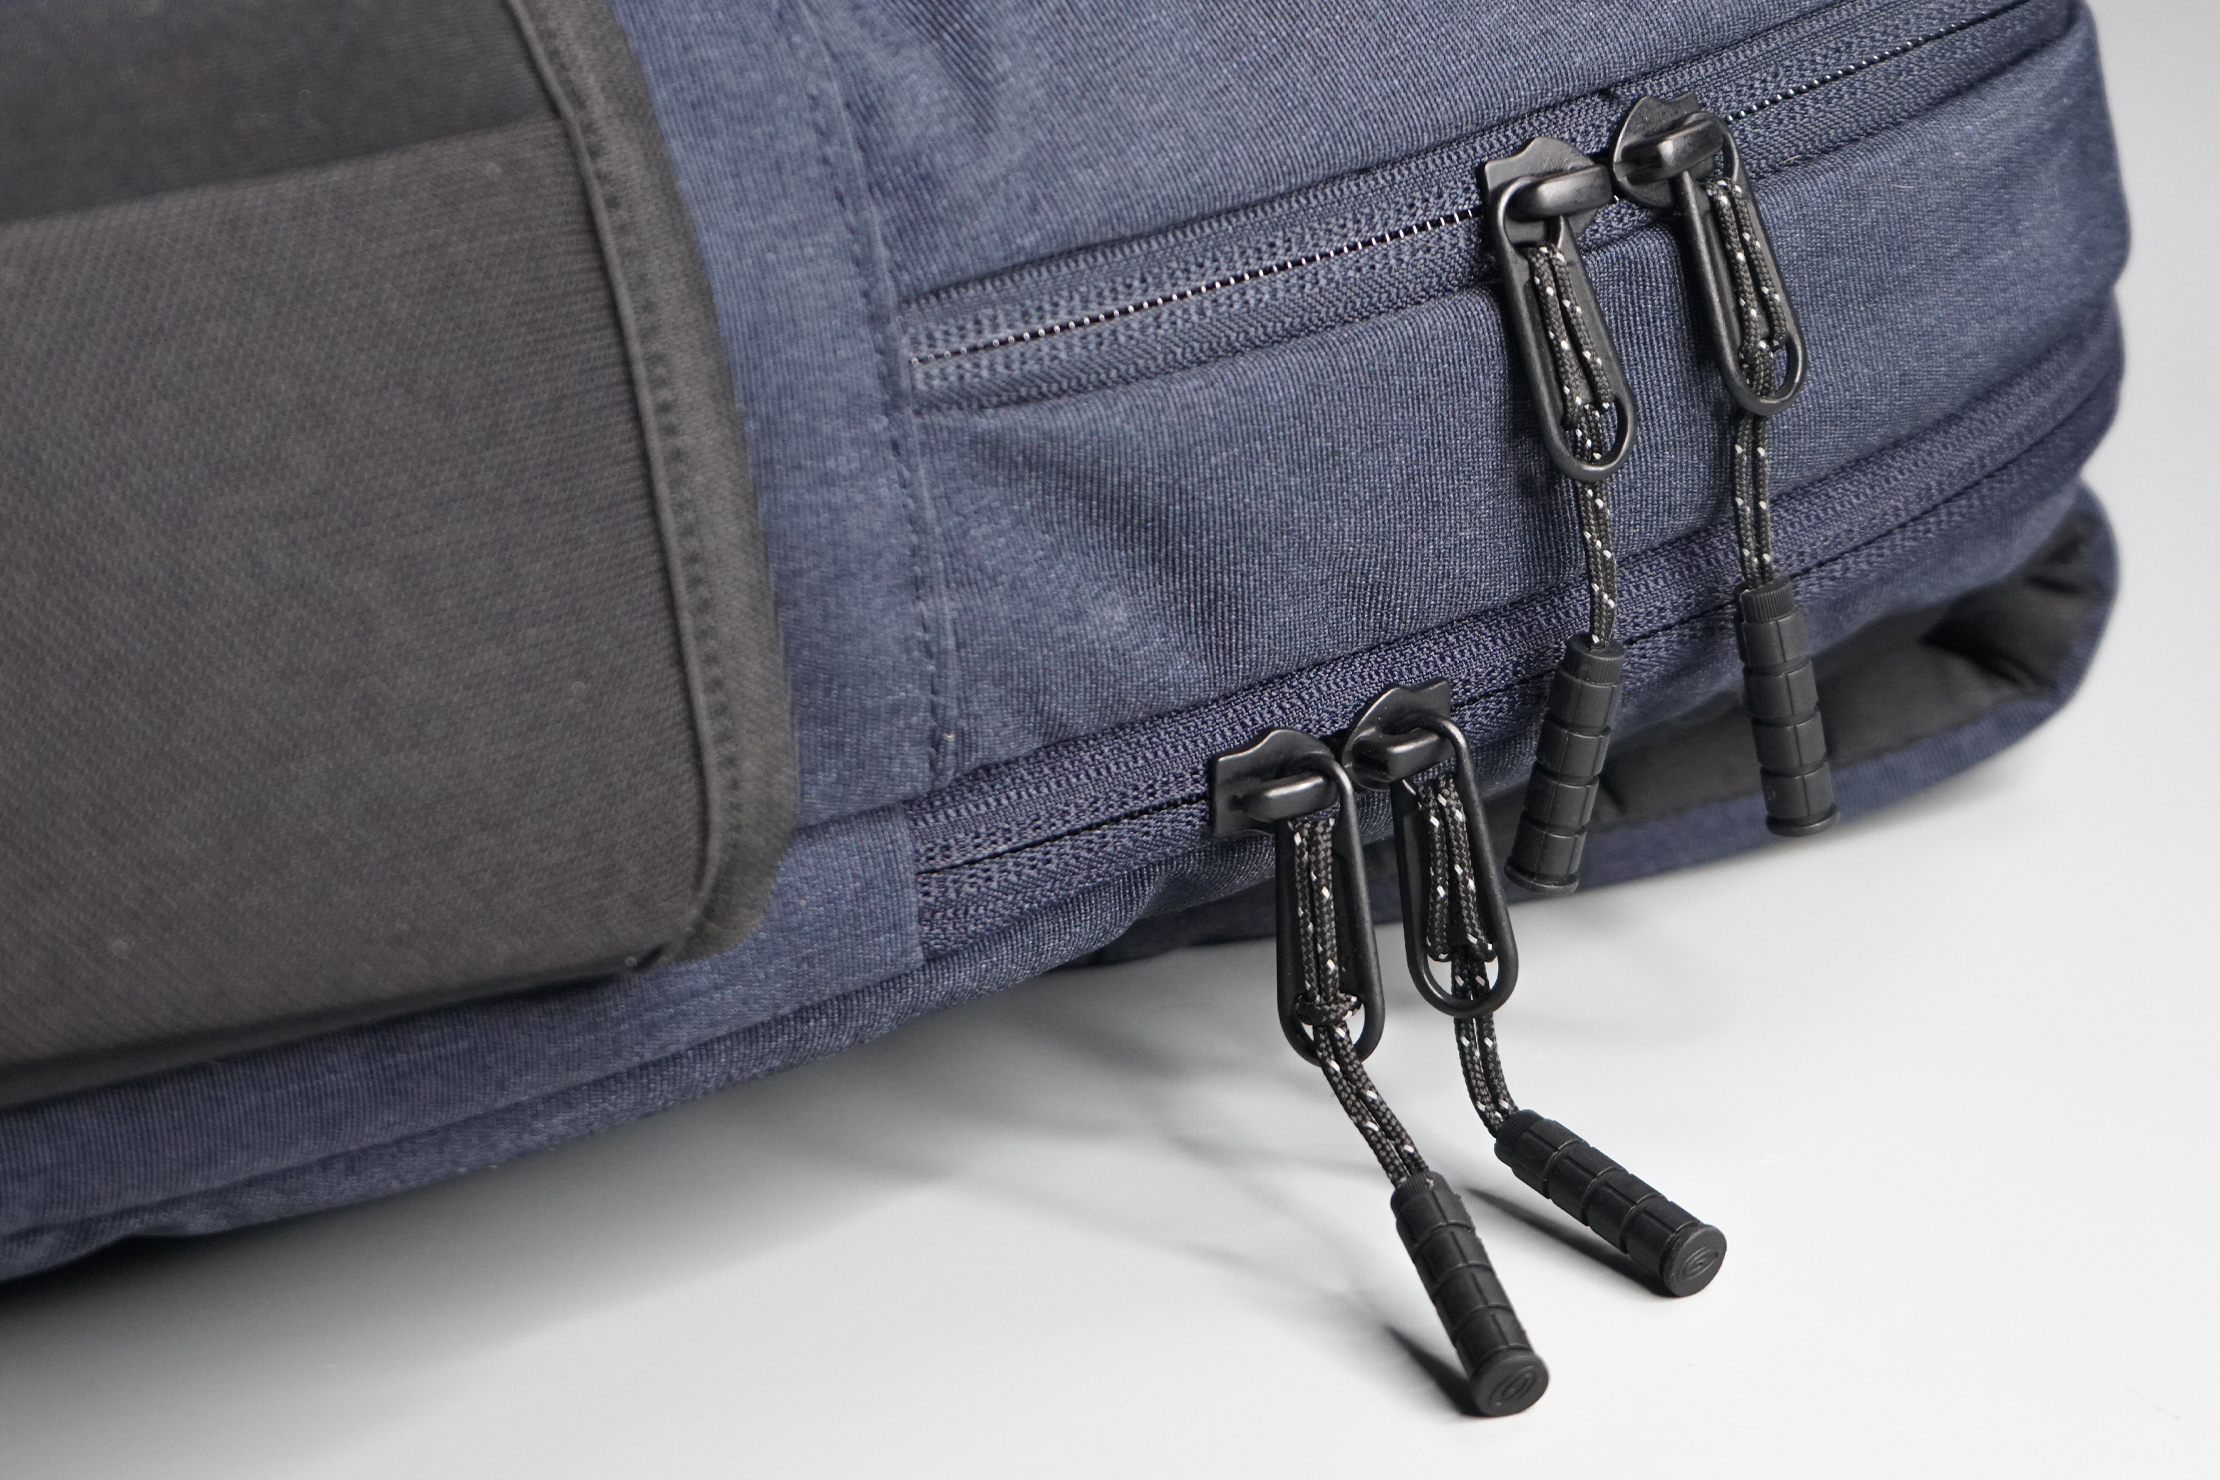 Timbuk2 Authority Laptop Backpack Zippers